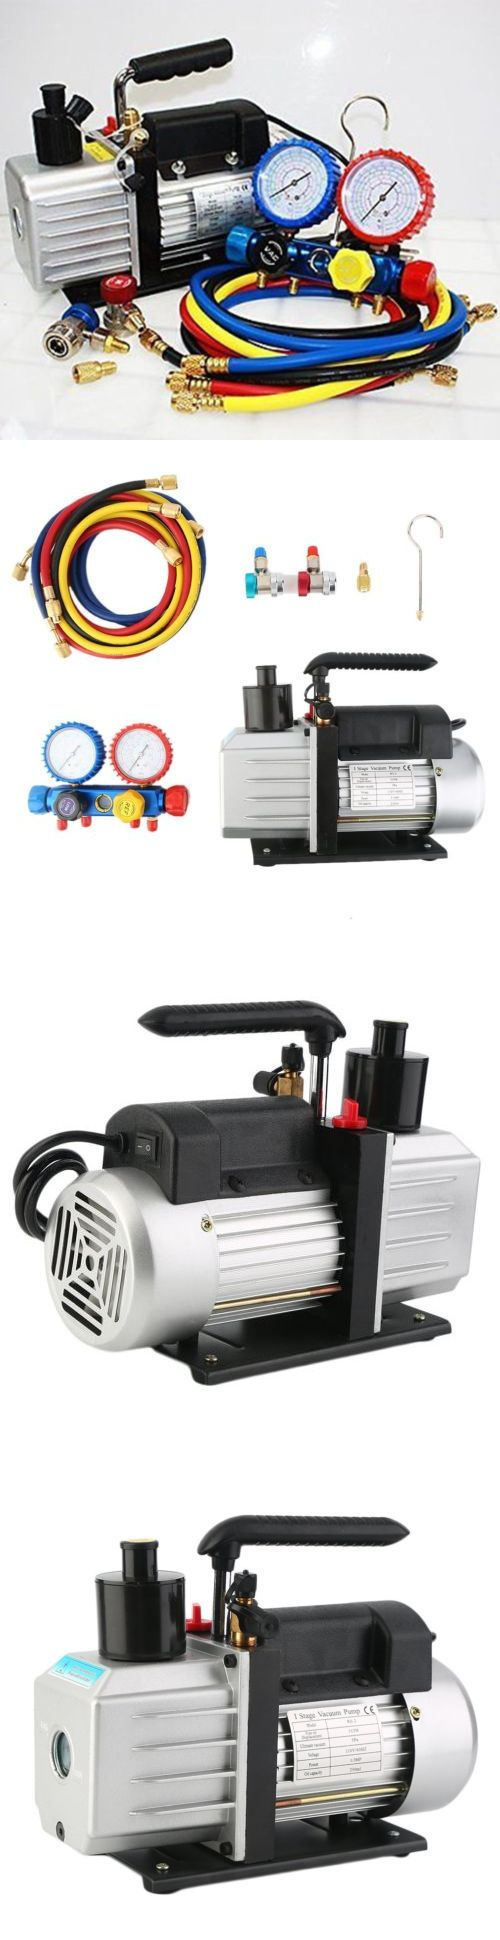 Other Consumer Electronic Lots: 4.8Cfm Vacuum Pump 4Valve Manifold Gauge R410a R134a R22 Hvac Ac Refrigerant Set -> BUY IT NOW ONLY: $179.55 on eBay!